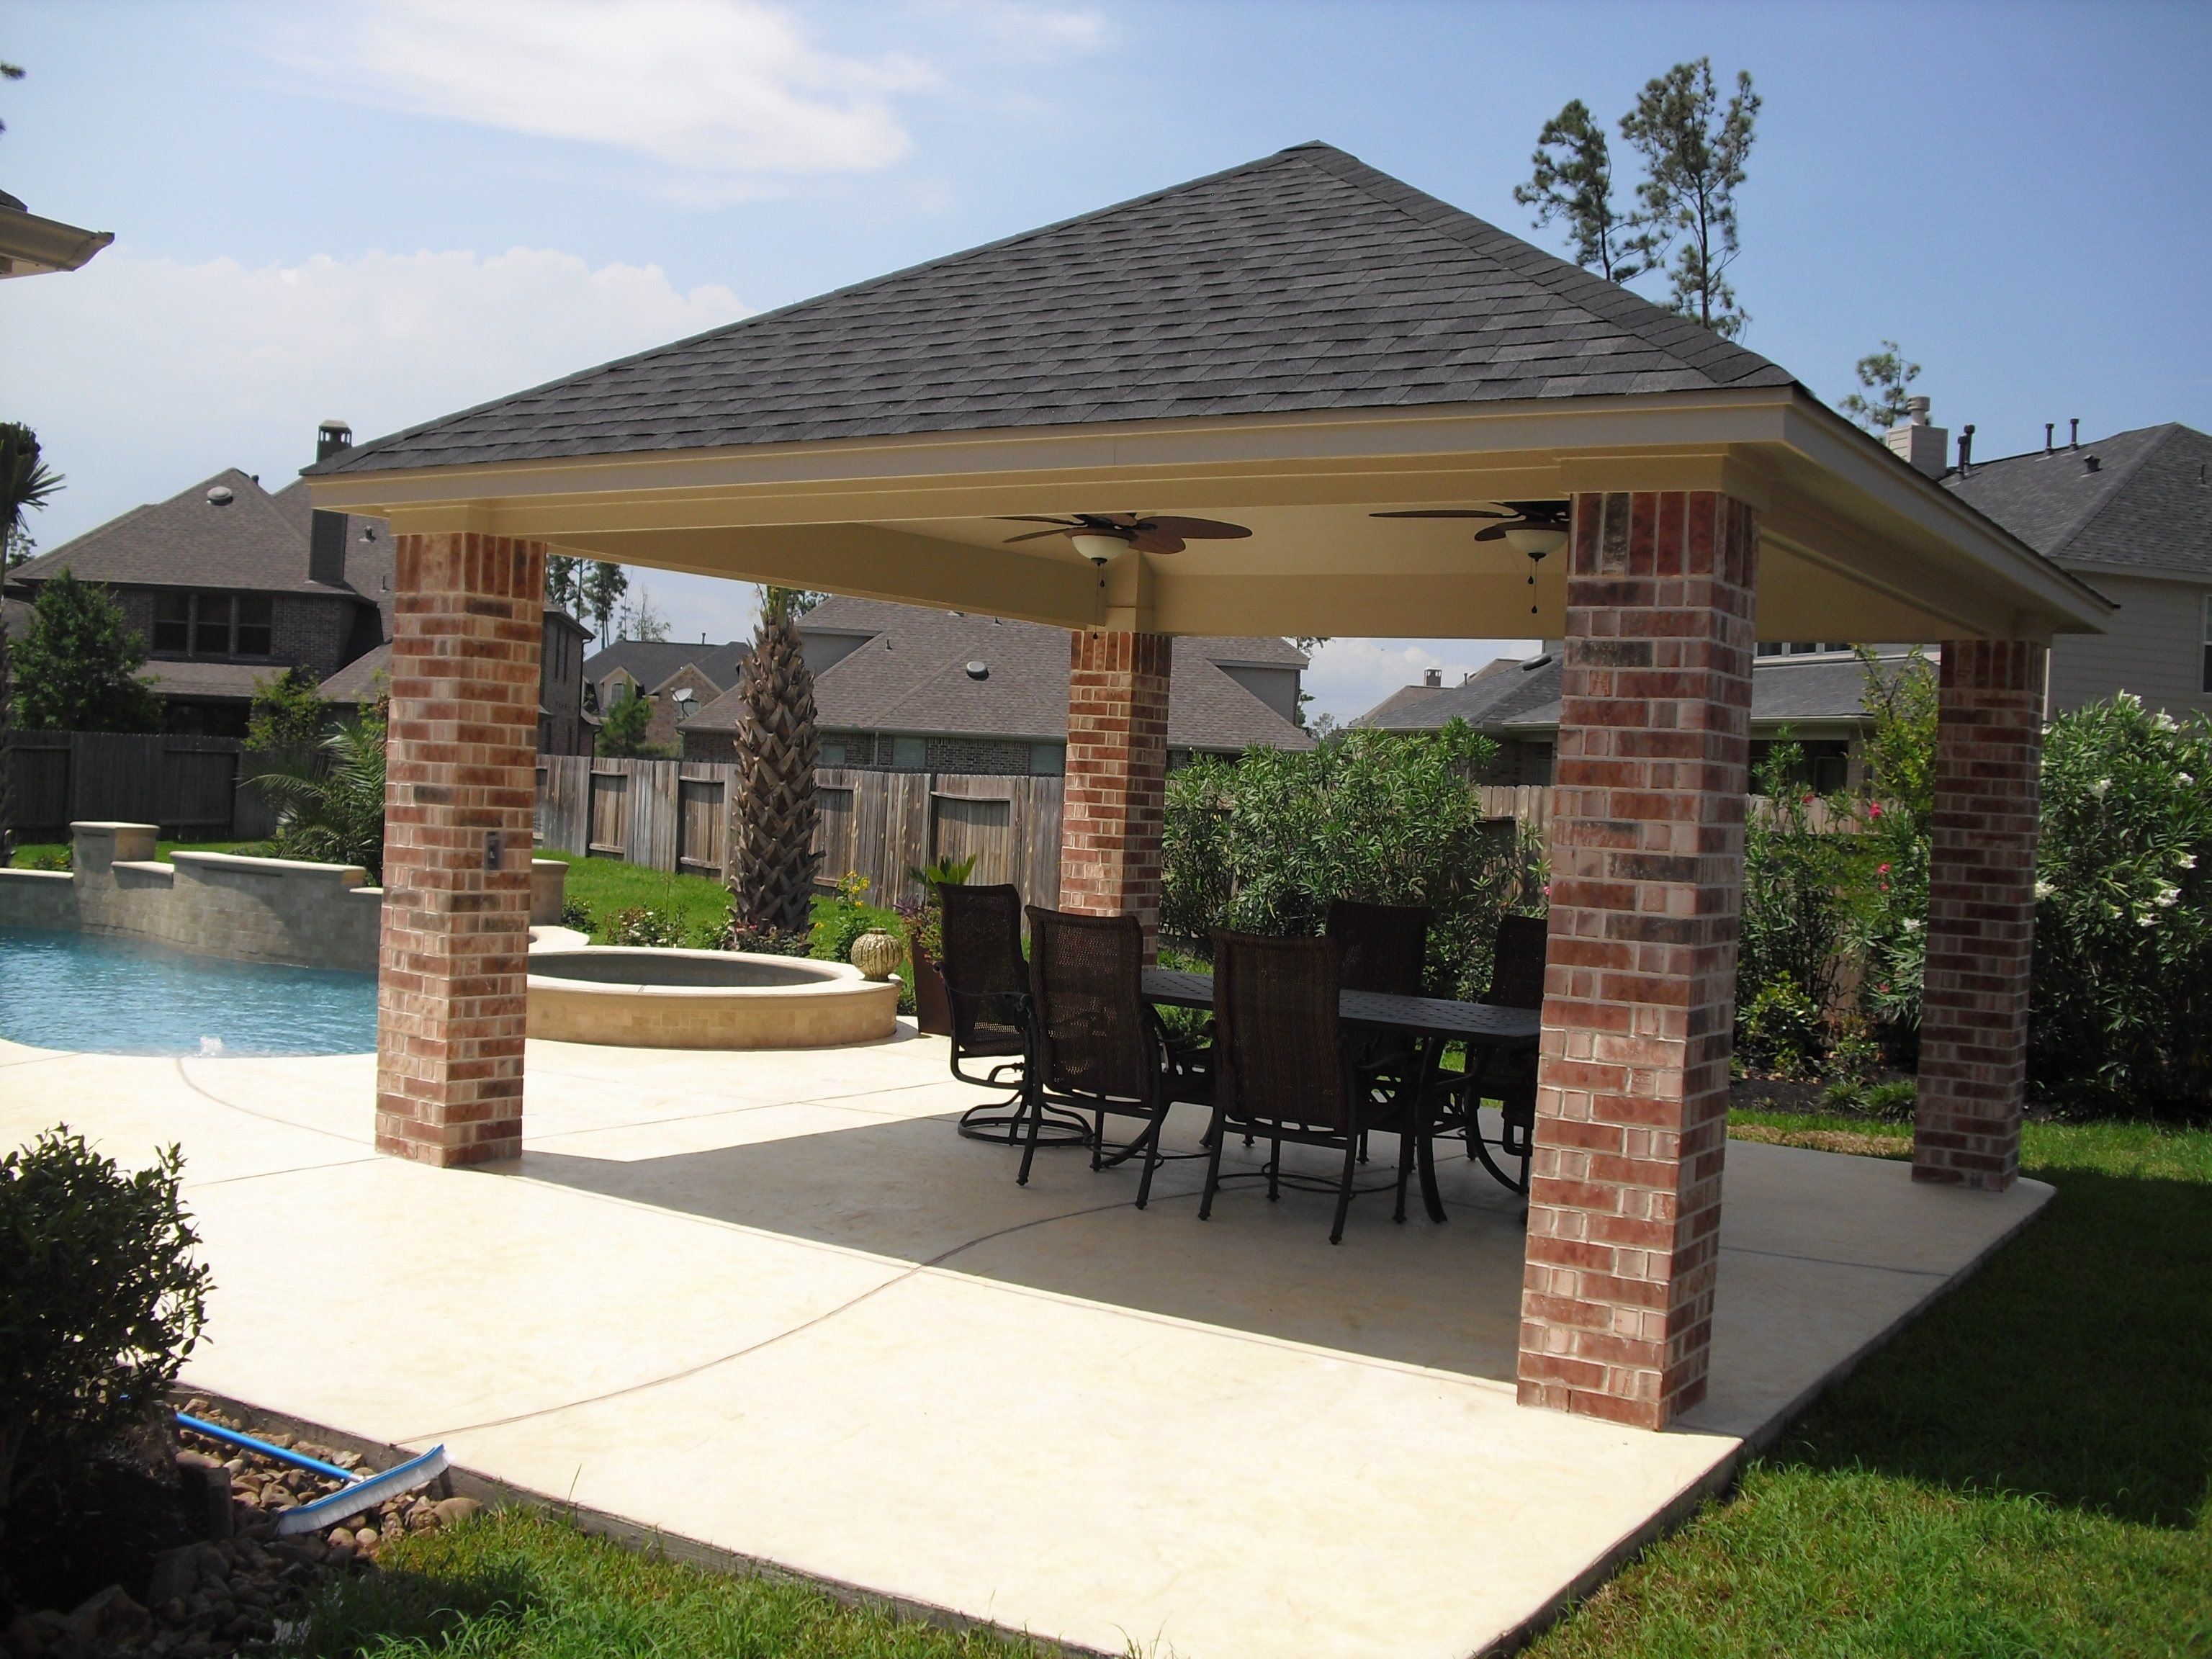 Patio Covers - Custom Patio Structures on Covered Patio Design Ideas id=53854